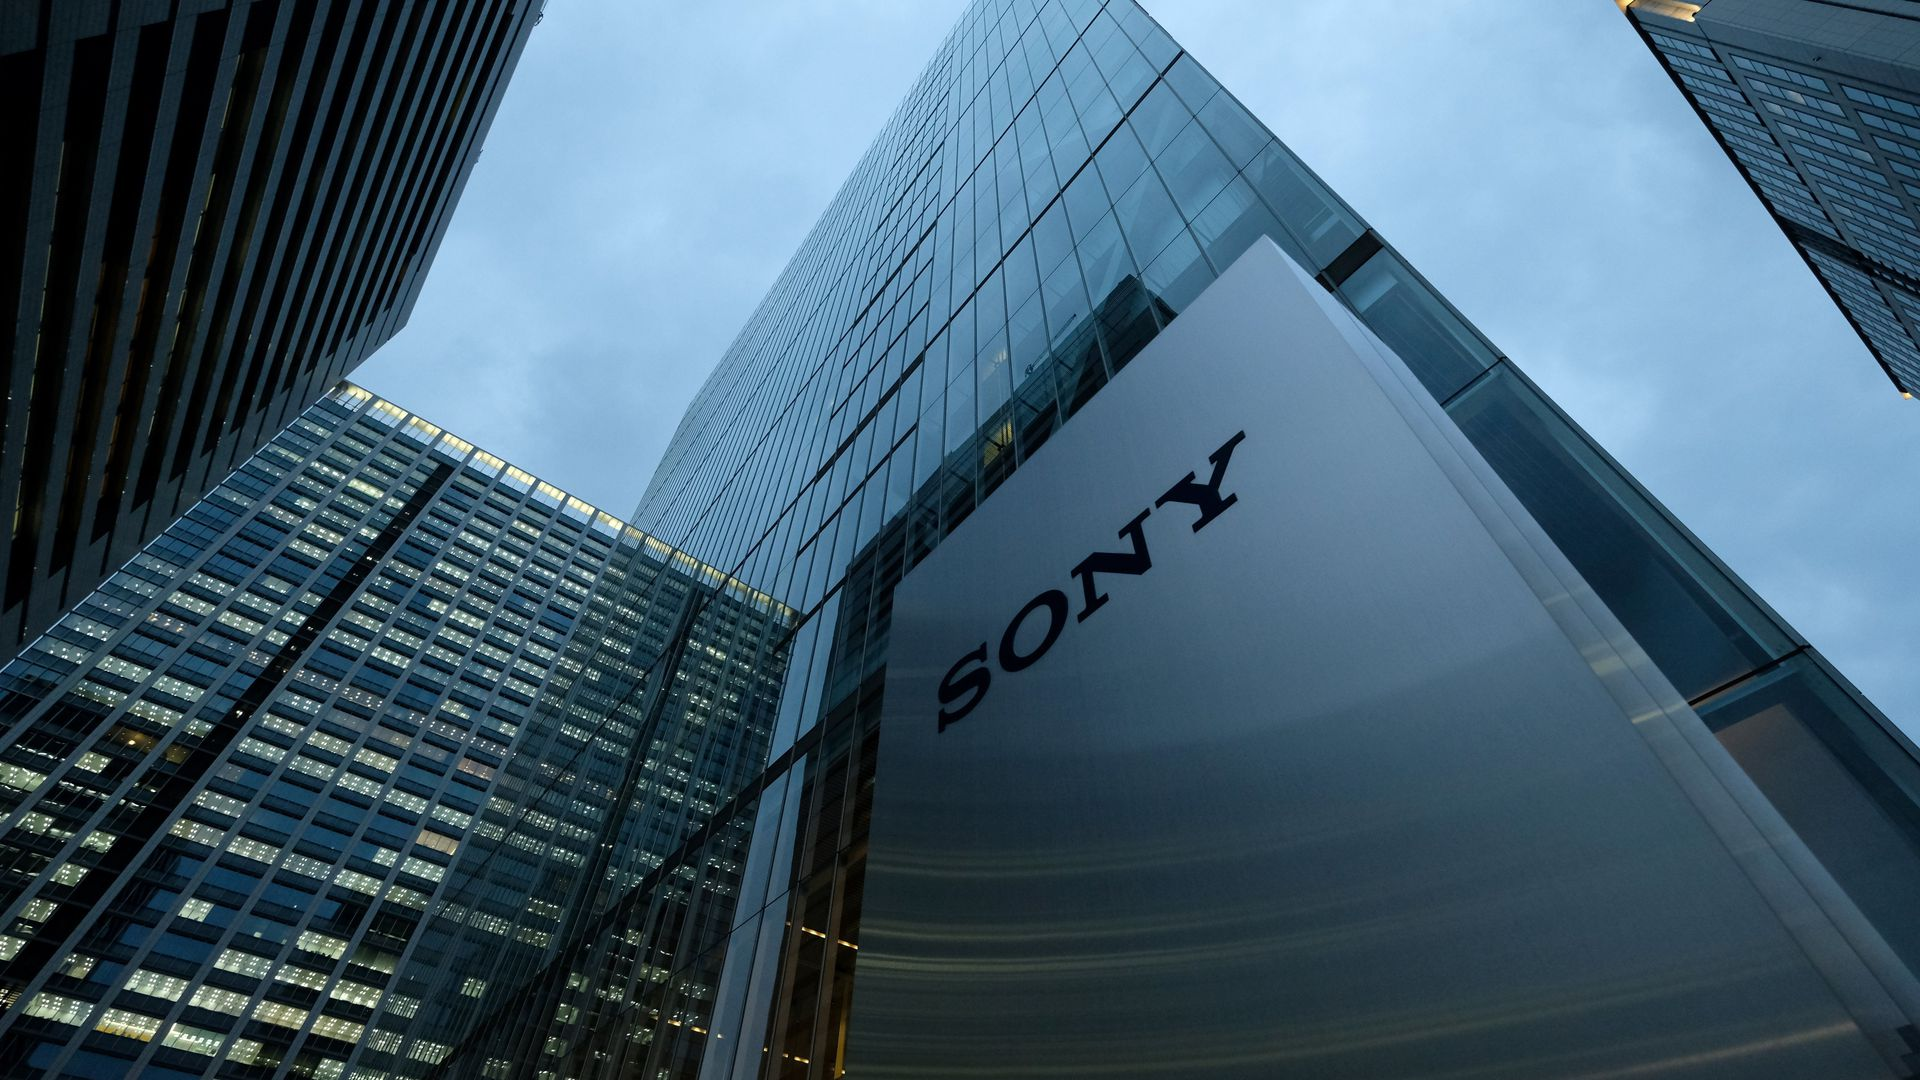 Sony Corp. headquarters in Tokyo, Japan.